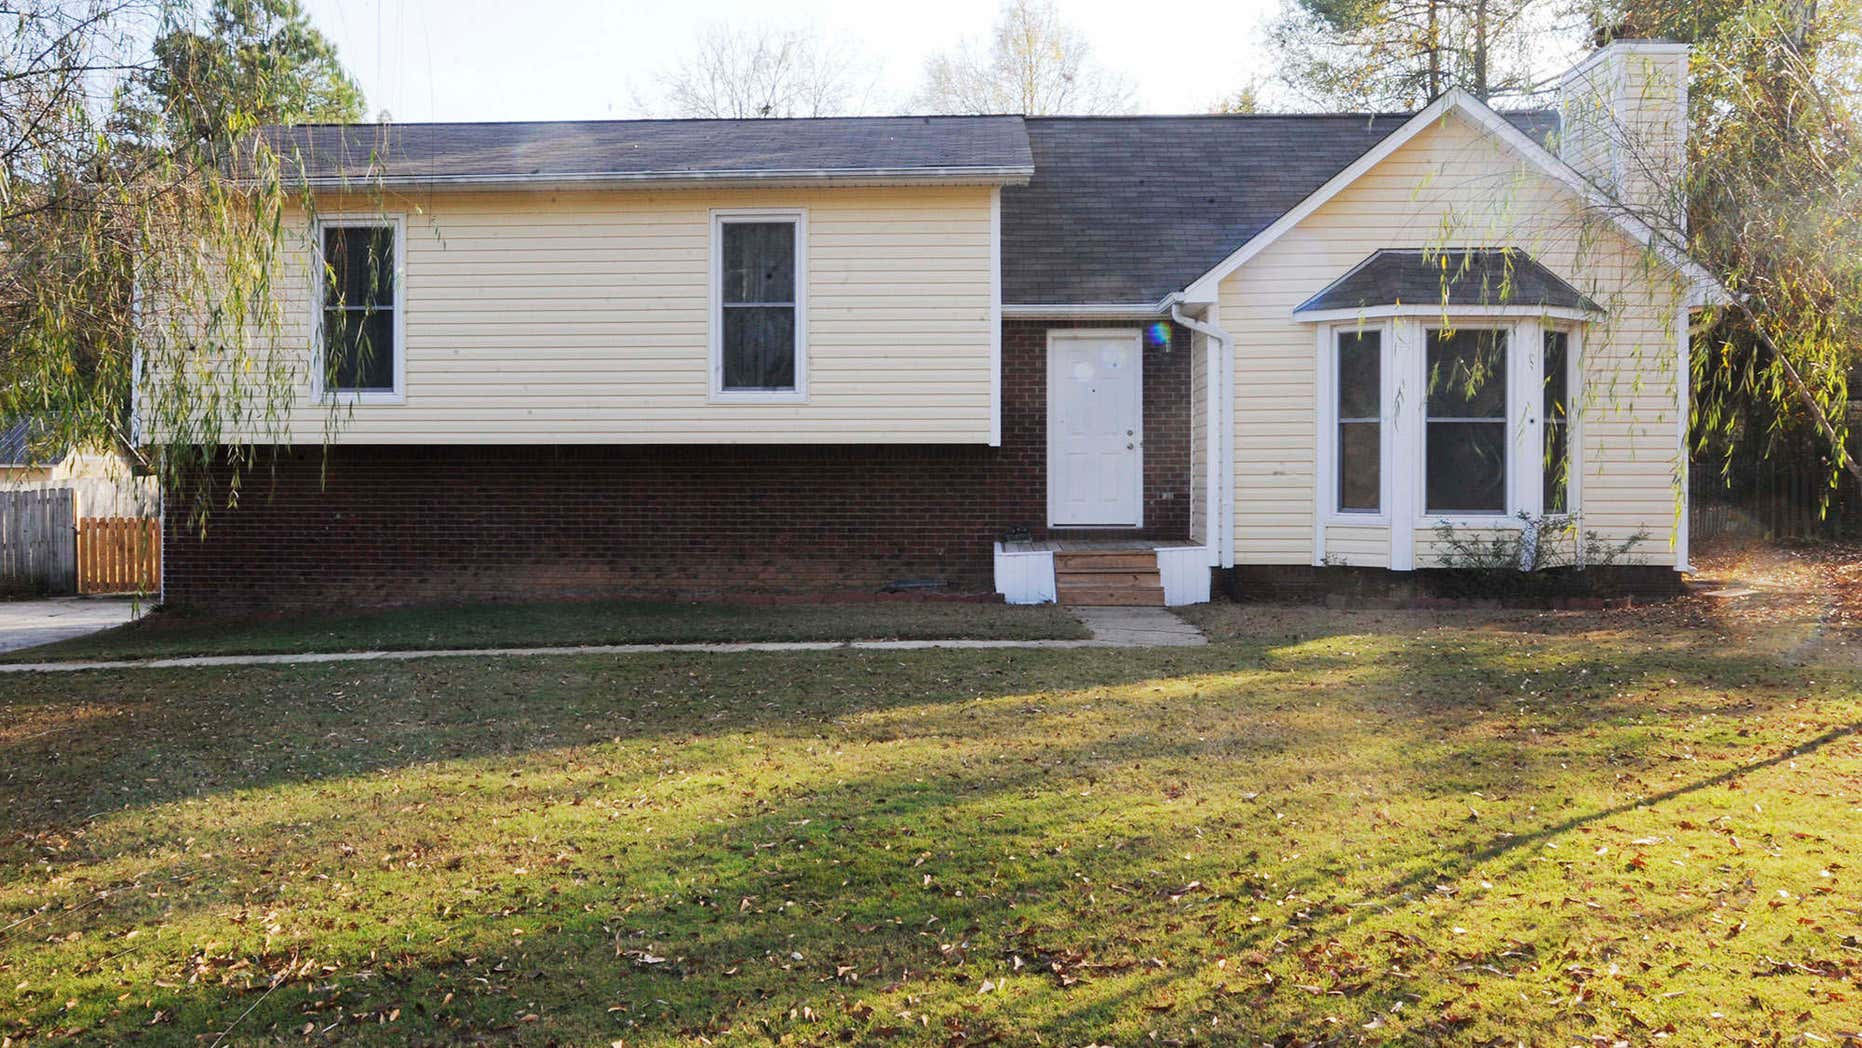 The suburban home where police say a 14-year-old boy was held for most of two years in the basement is shown on Tuesday, Nov. 15, 2016, in Helena, Ala.